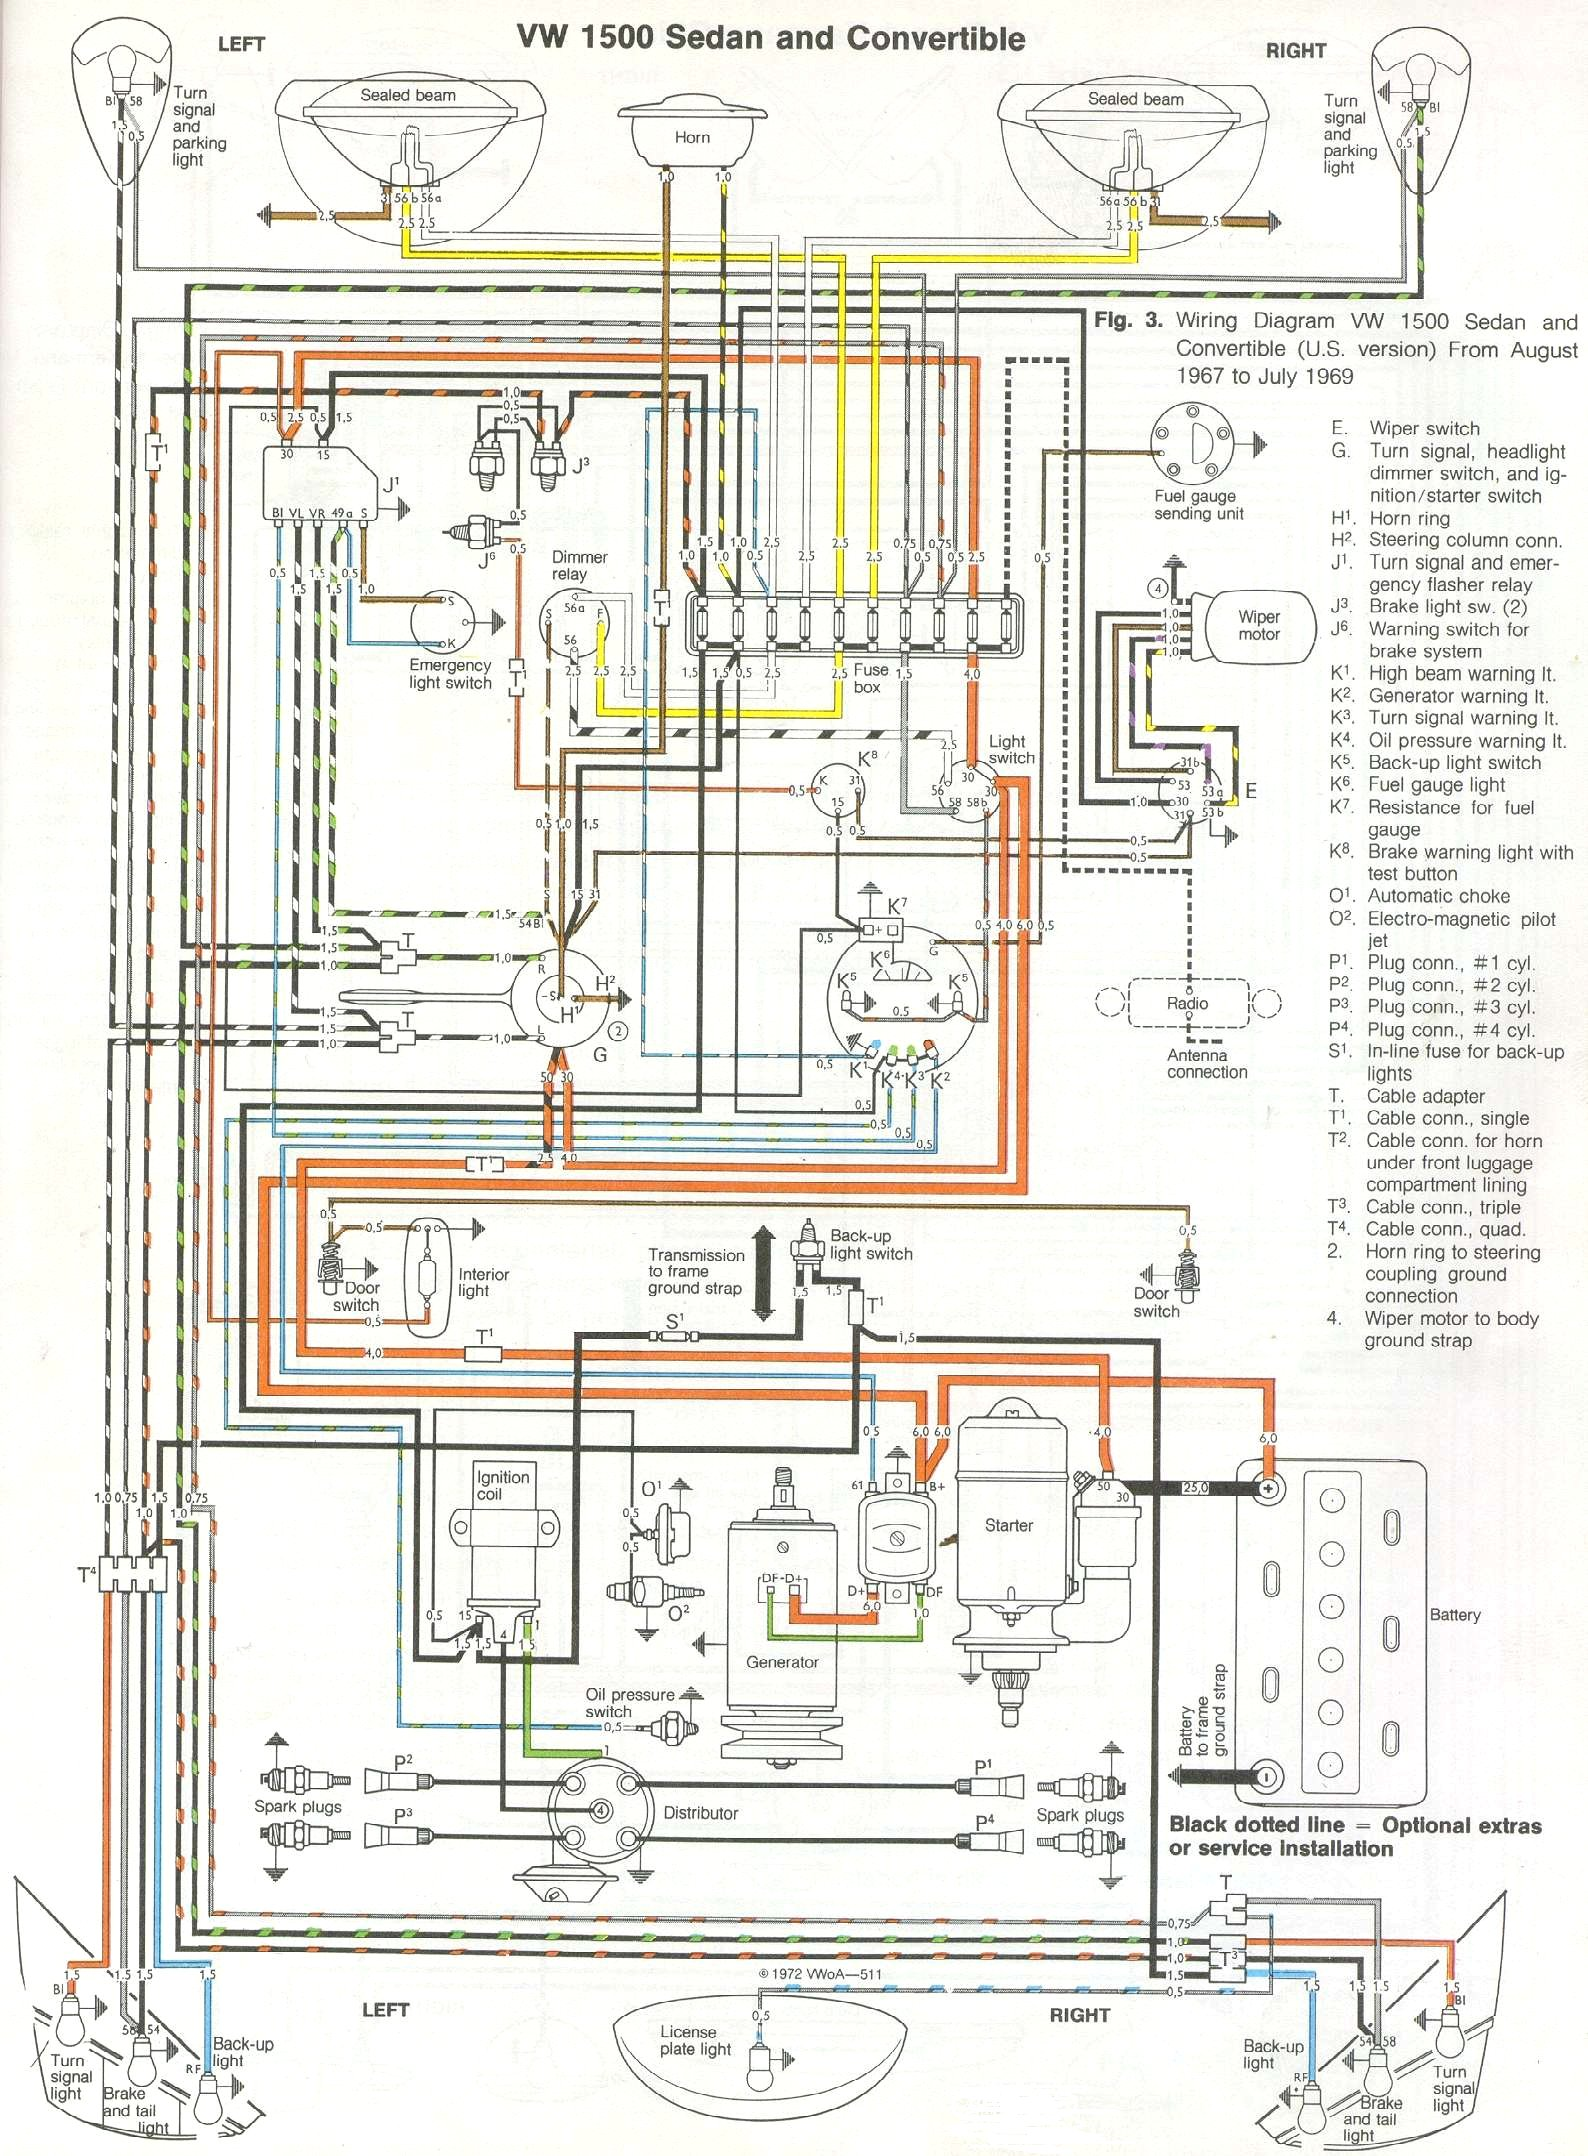 Best Images Of Vw Beetle Wiring Diagram on 72 vw generator wiring diagram, 1971 vw bus wiring diagram, 1972 vw wiring diagram, 1972 vw beetle engine diagram, 72 vw wiring light, vw bug wiring diagram, 72 vw bug convertible, volkswagen beetle diagram, 72 vw engine diagram, 72 karmann ghia wiring diagram, 72 vw beetle fuse diagram, vw bus engine diagram, air cooled vw wiring diagram, vw 1600 engine diagram, 1973 vw wiring diagram, vw alternator diagram, super beetle engine diagram, 72 toyota corolla wiring diagram,